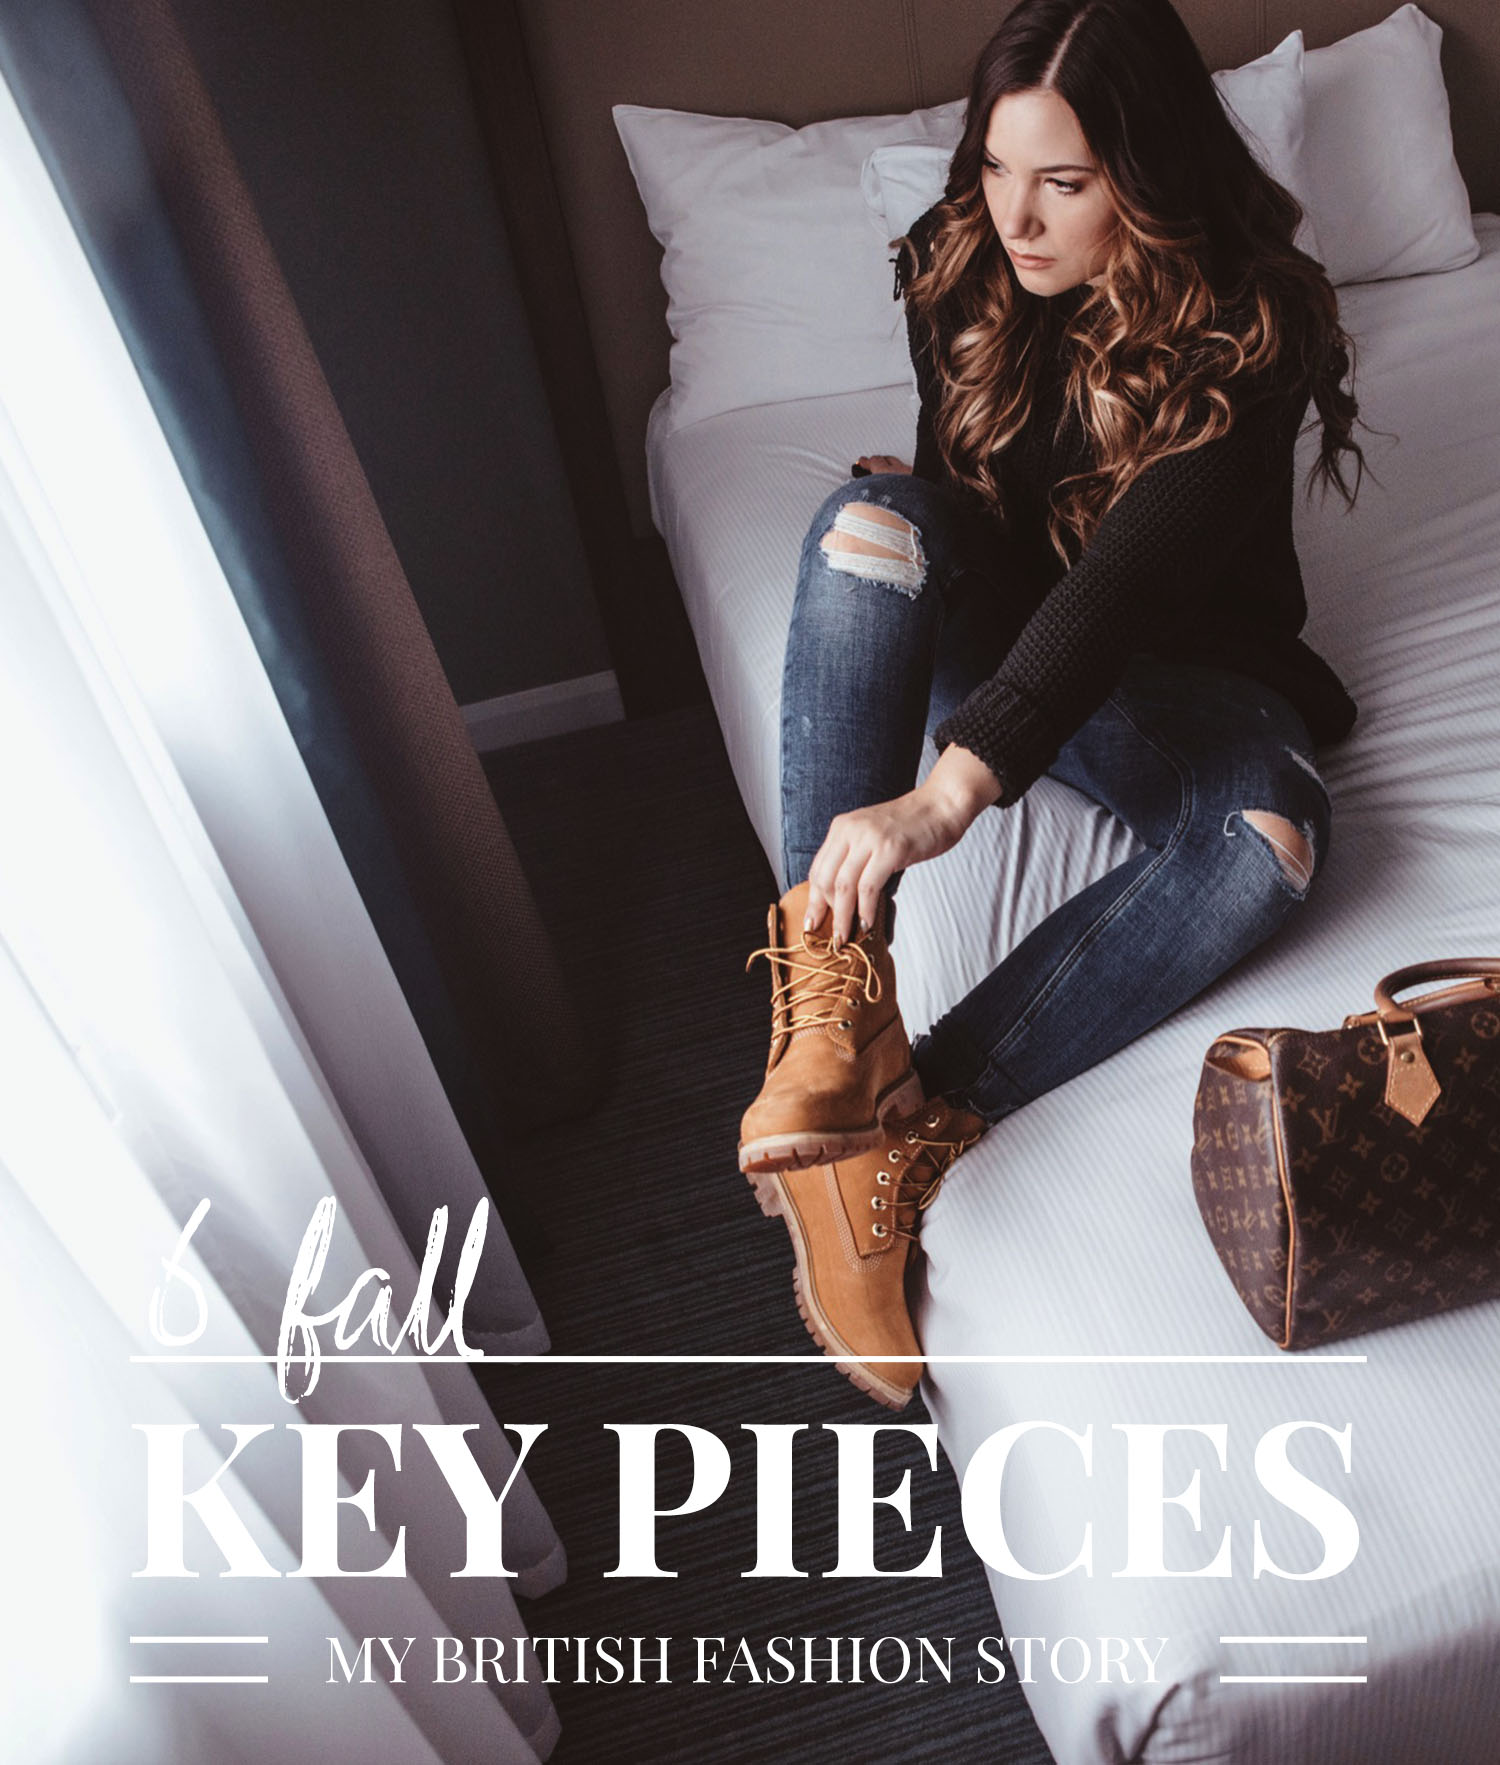 6 Key Pieces for fall - My British Fashion Story